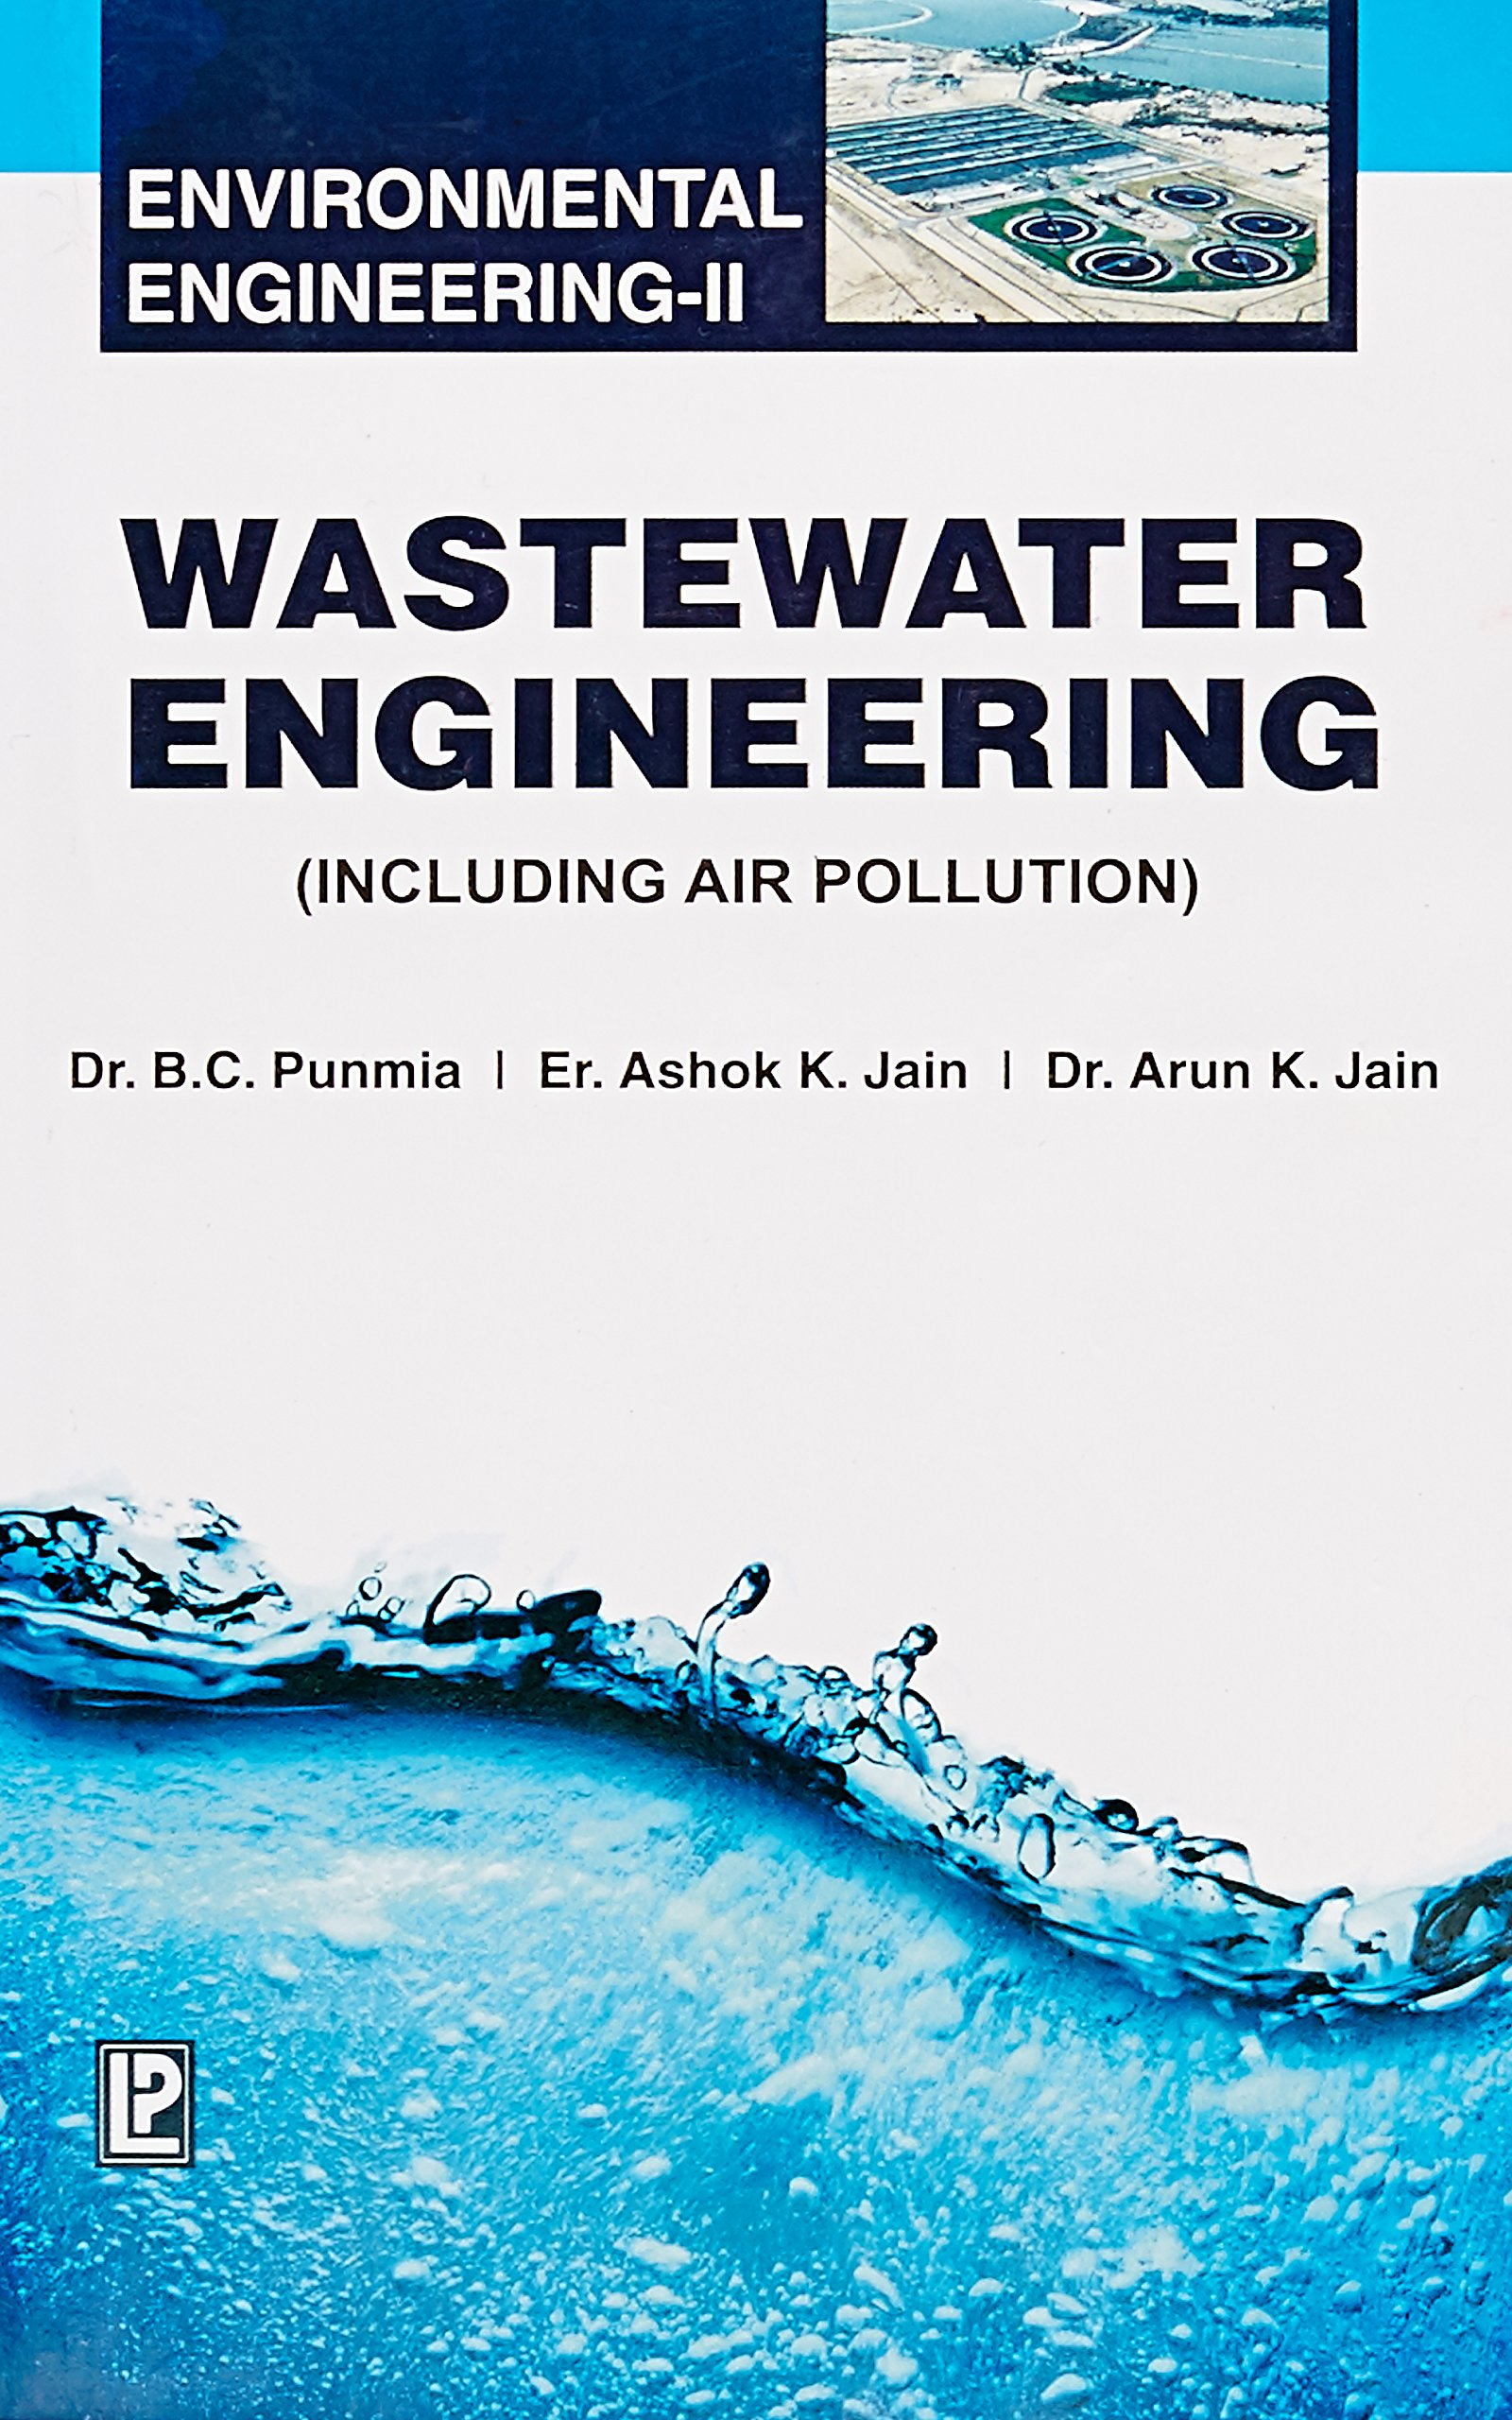 Buy Wastewater Engineering ( Including Air Pollution ) Book Online at Low Prices in India | Wastewater Engineering ( Including Air Pollution ) Reviews & Ratings - Amazon.in